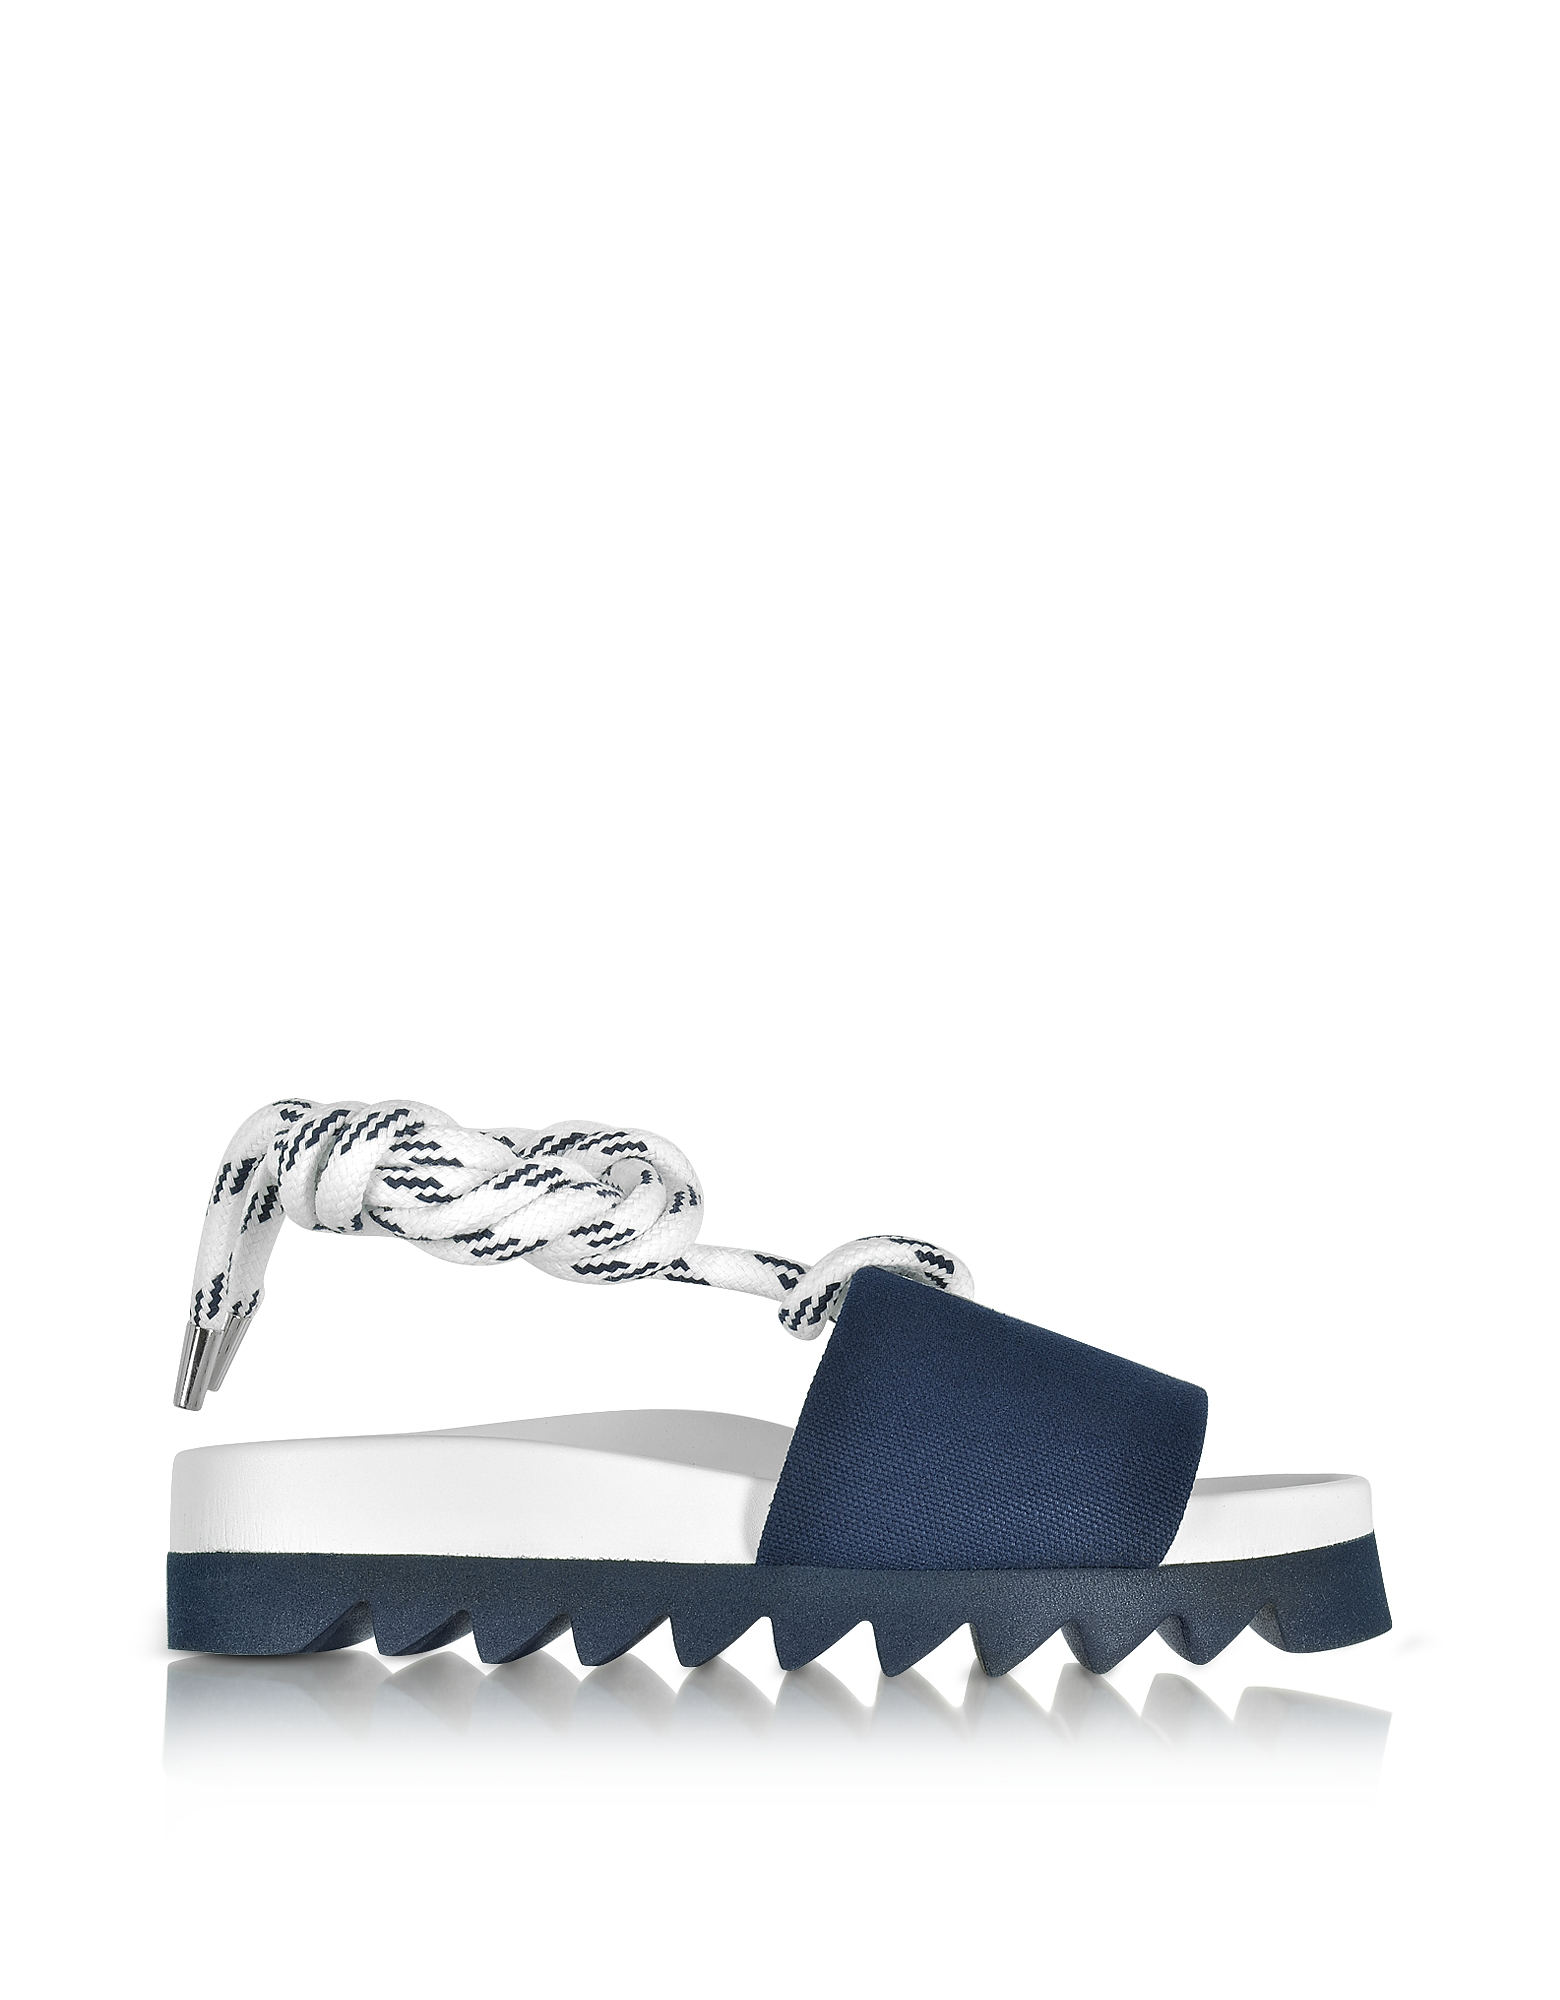 Joshua Sanders Shoes, Blue Canvas Sailor Flatform Sandals